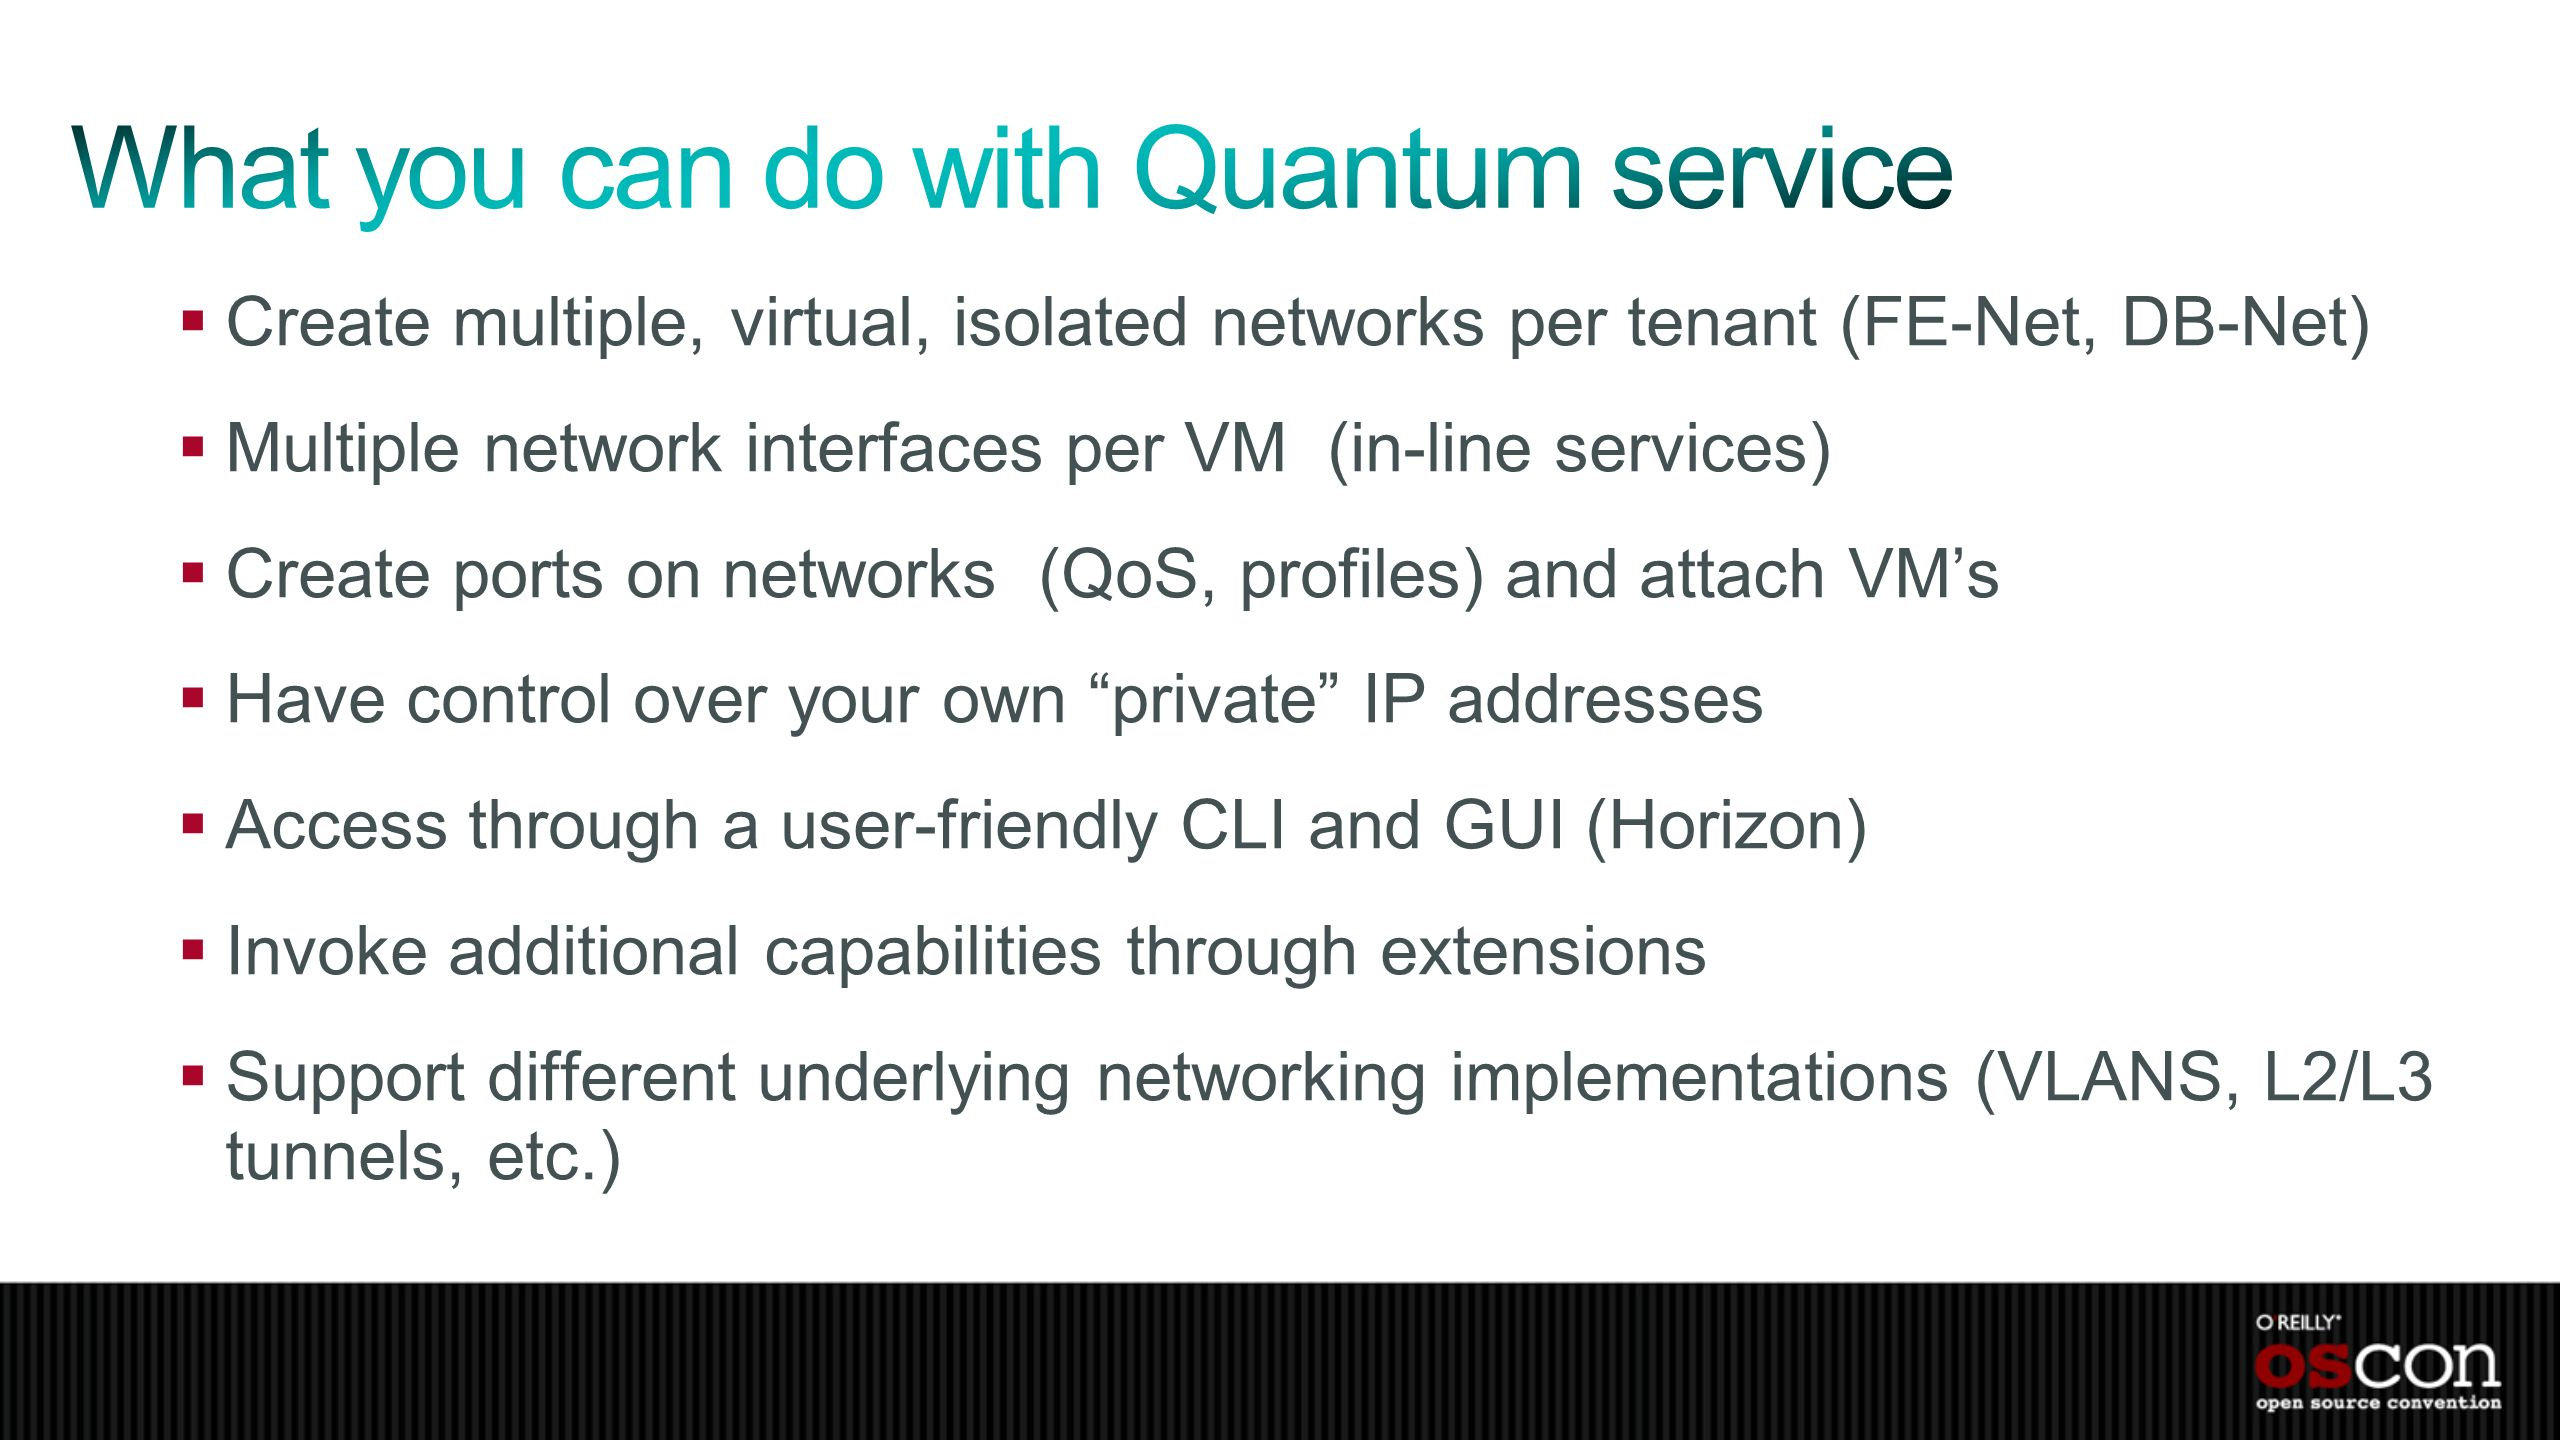 What you can do with Quantum service